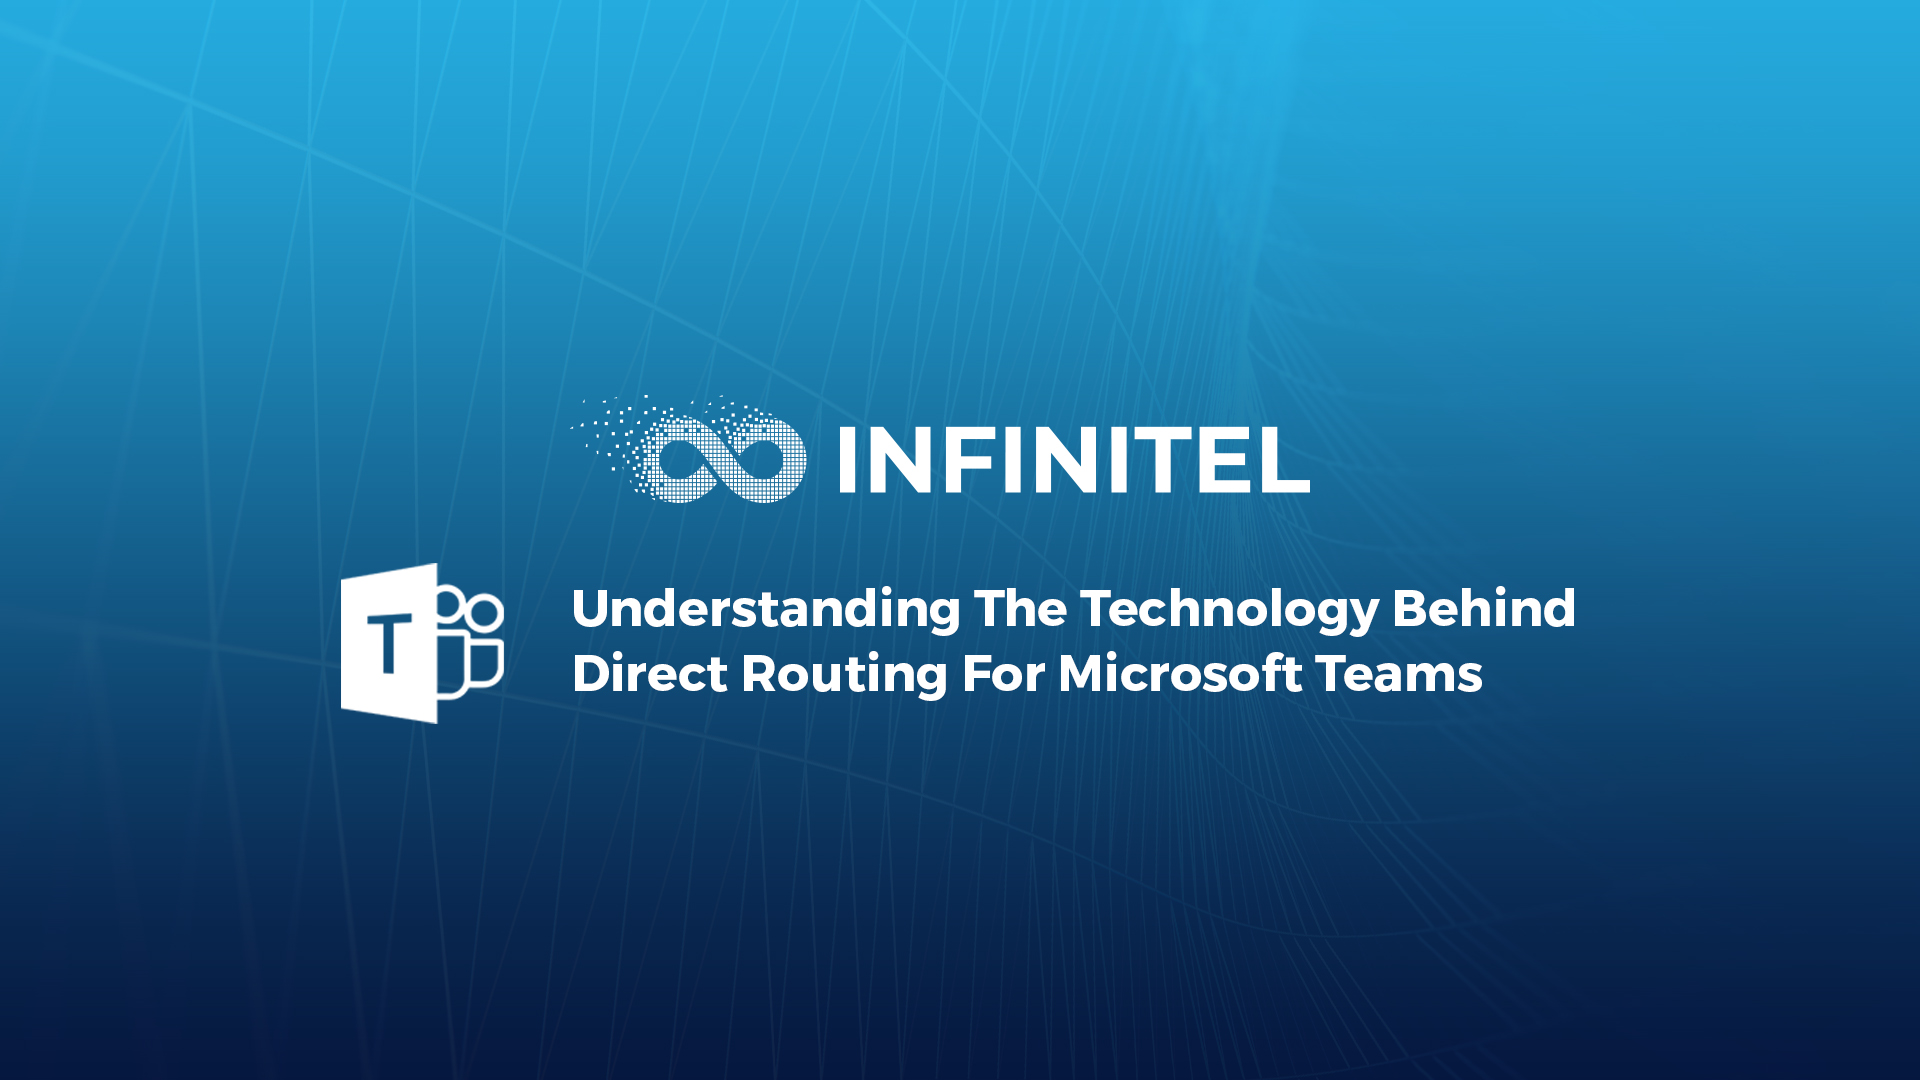 Understanding The Technology Behind Direct Routing For Microsoft Teams